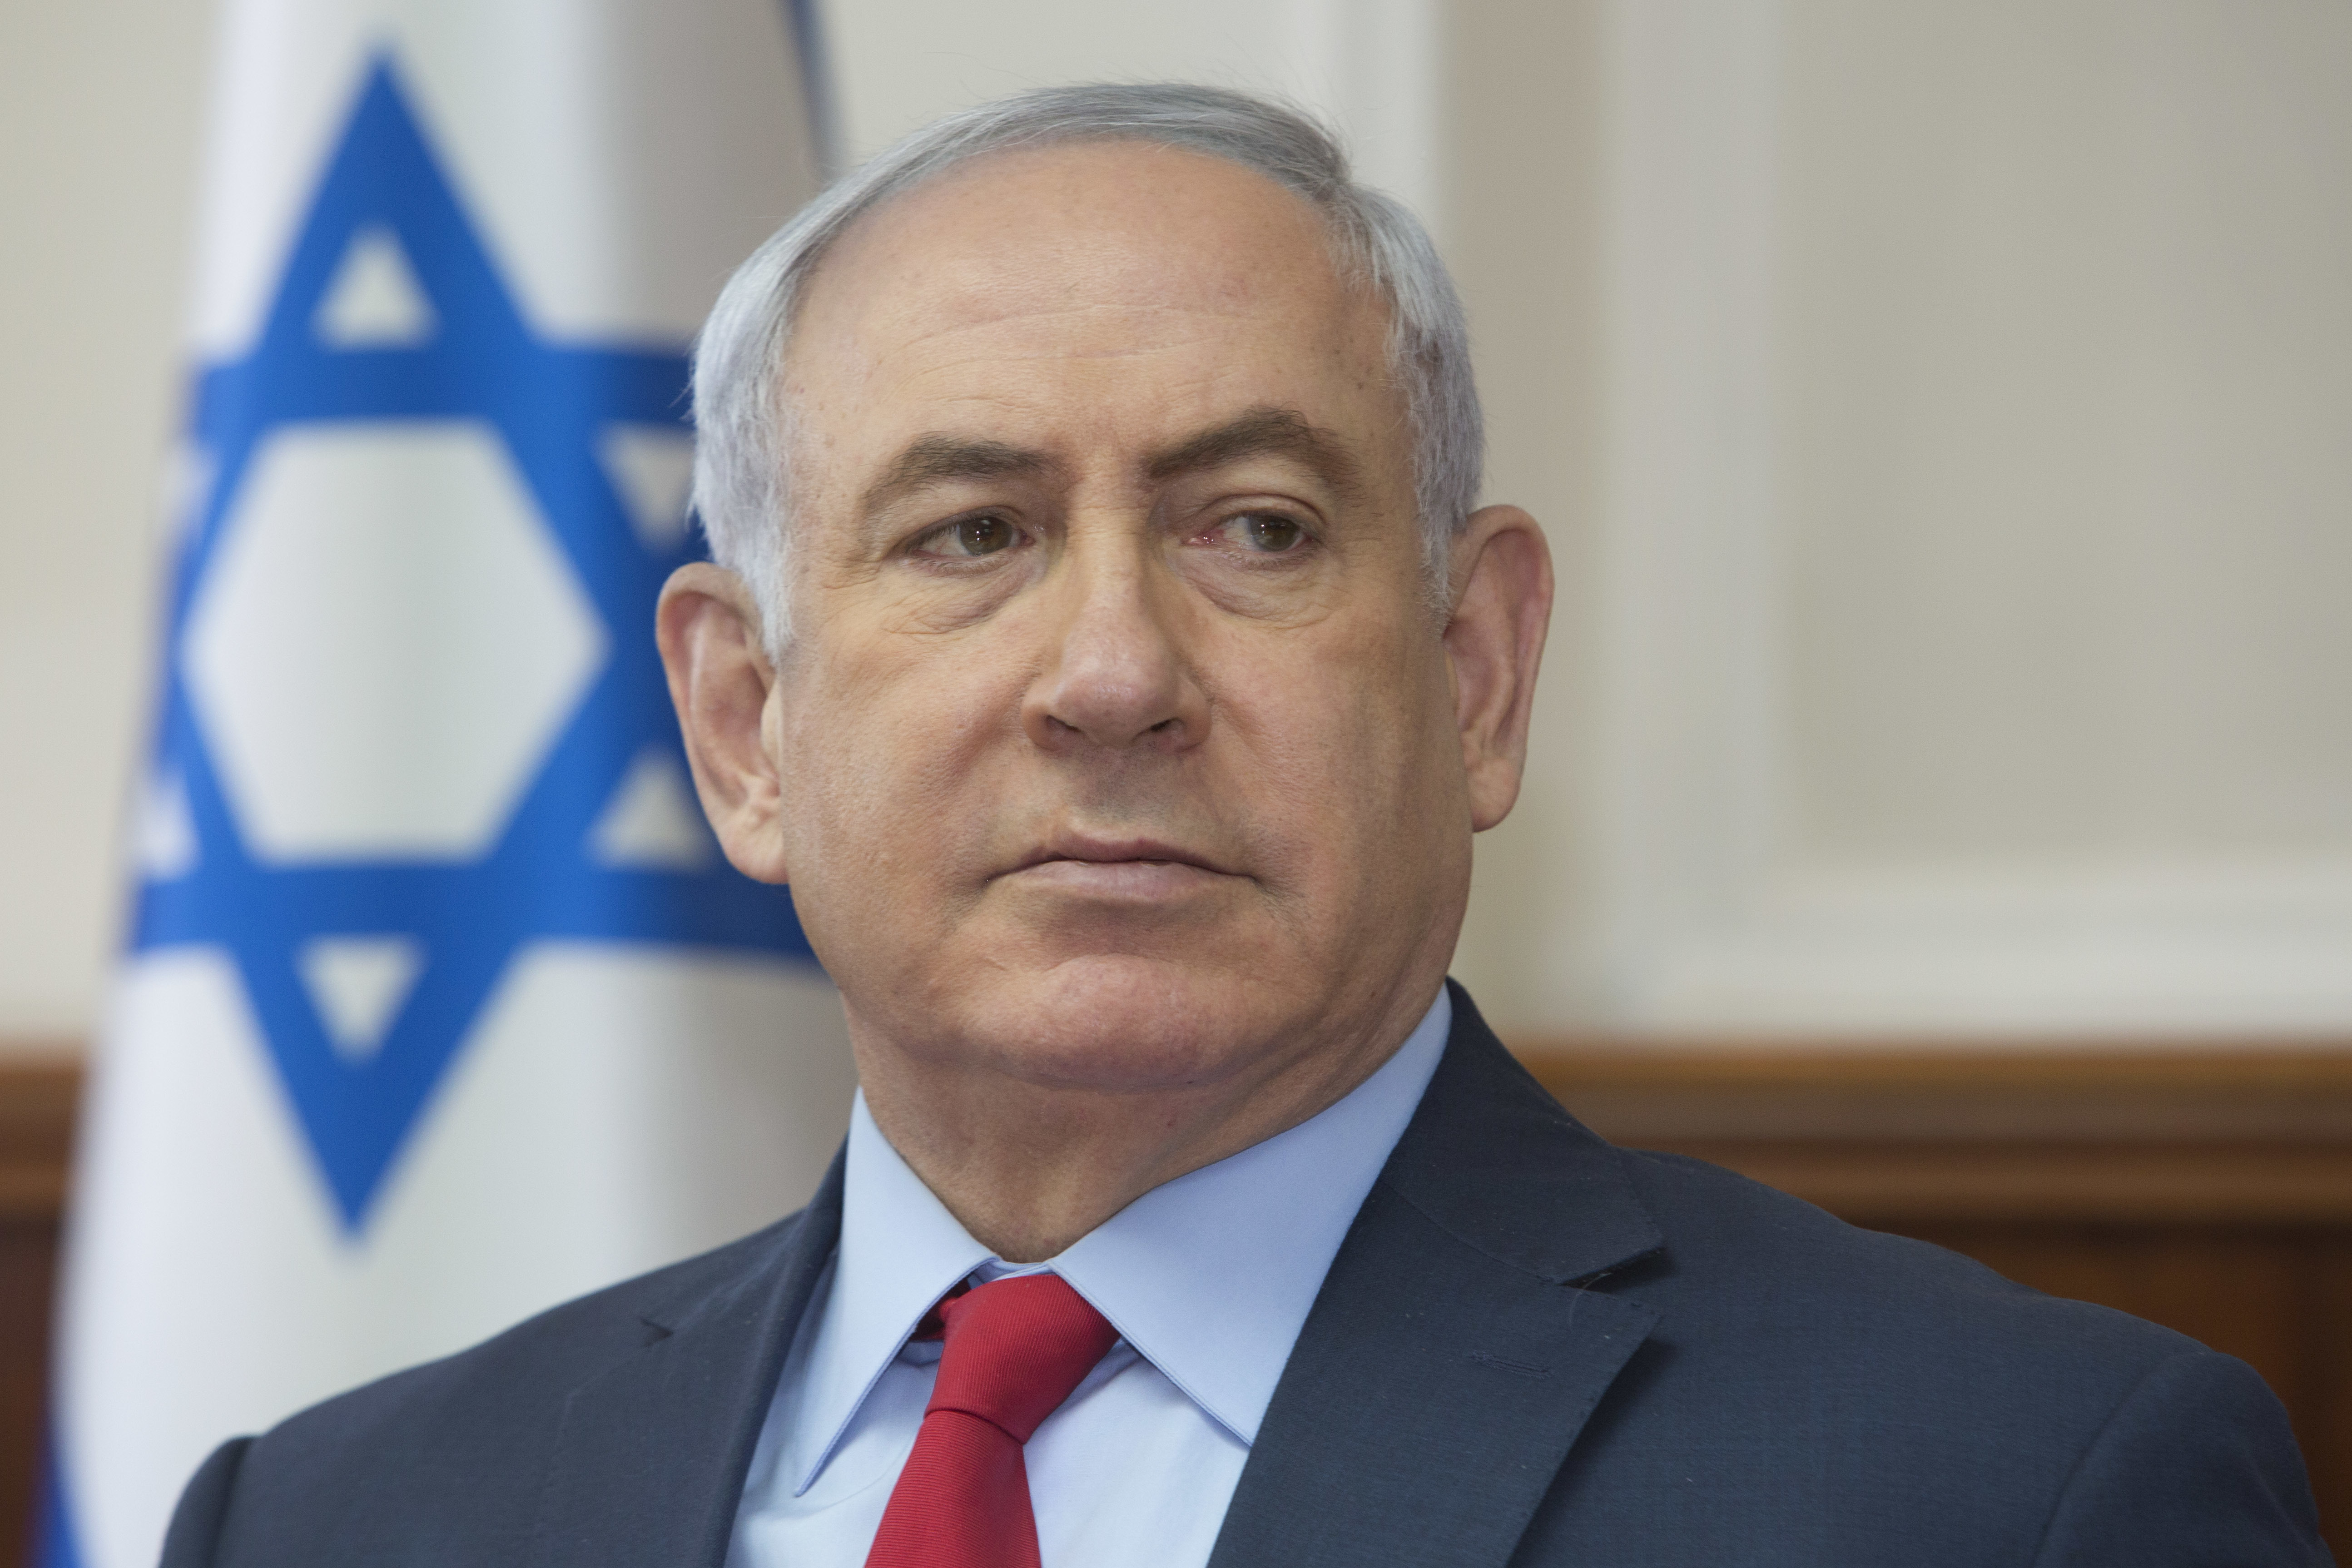 Israeli Prime Minister Benjamin Netanyahu attends the weekly cabinet meeting at his office in Jerusalem, Sunday, Oct. 1, 2017.